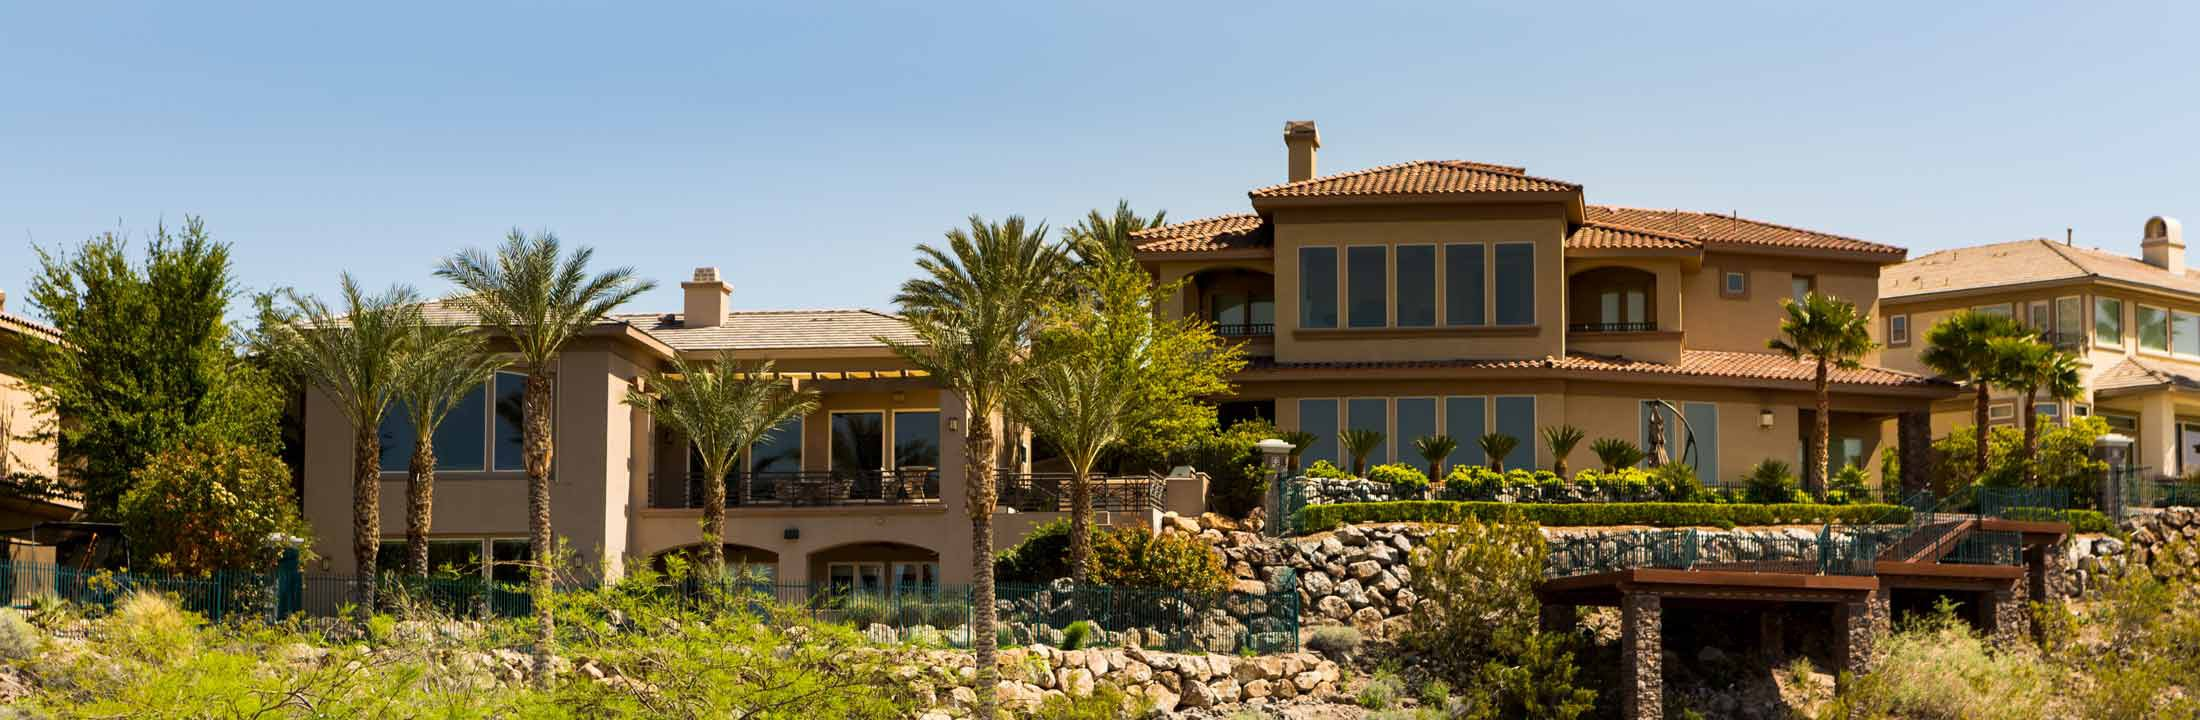 cadence-homes-for-sale-henderson